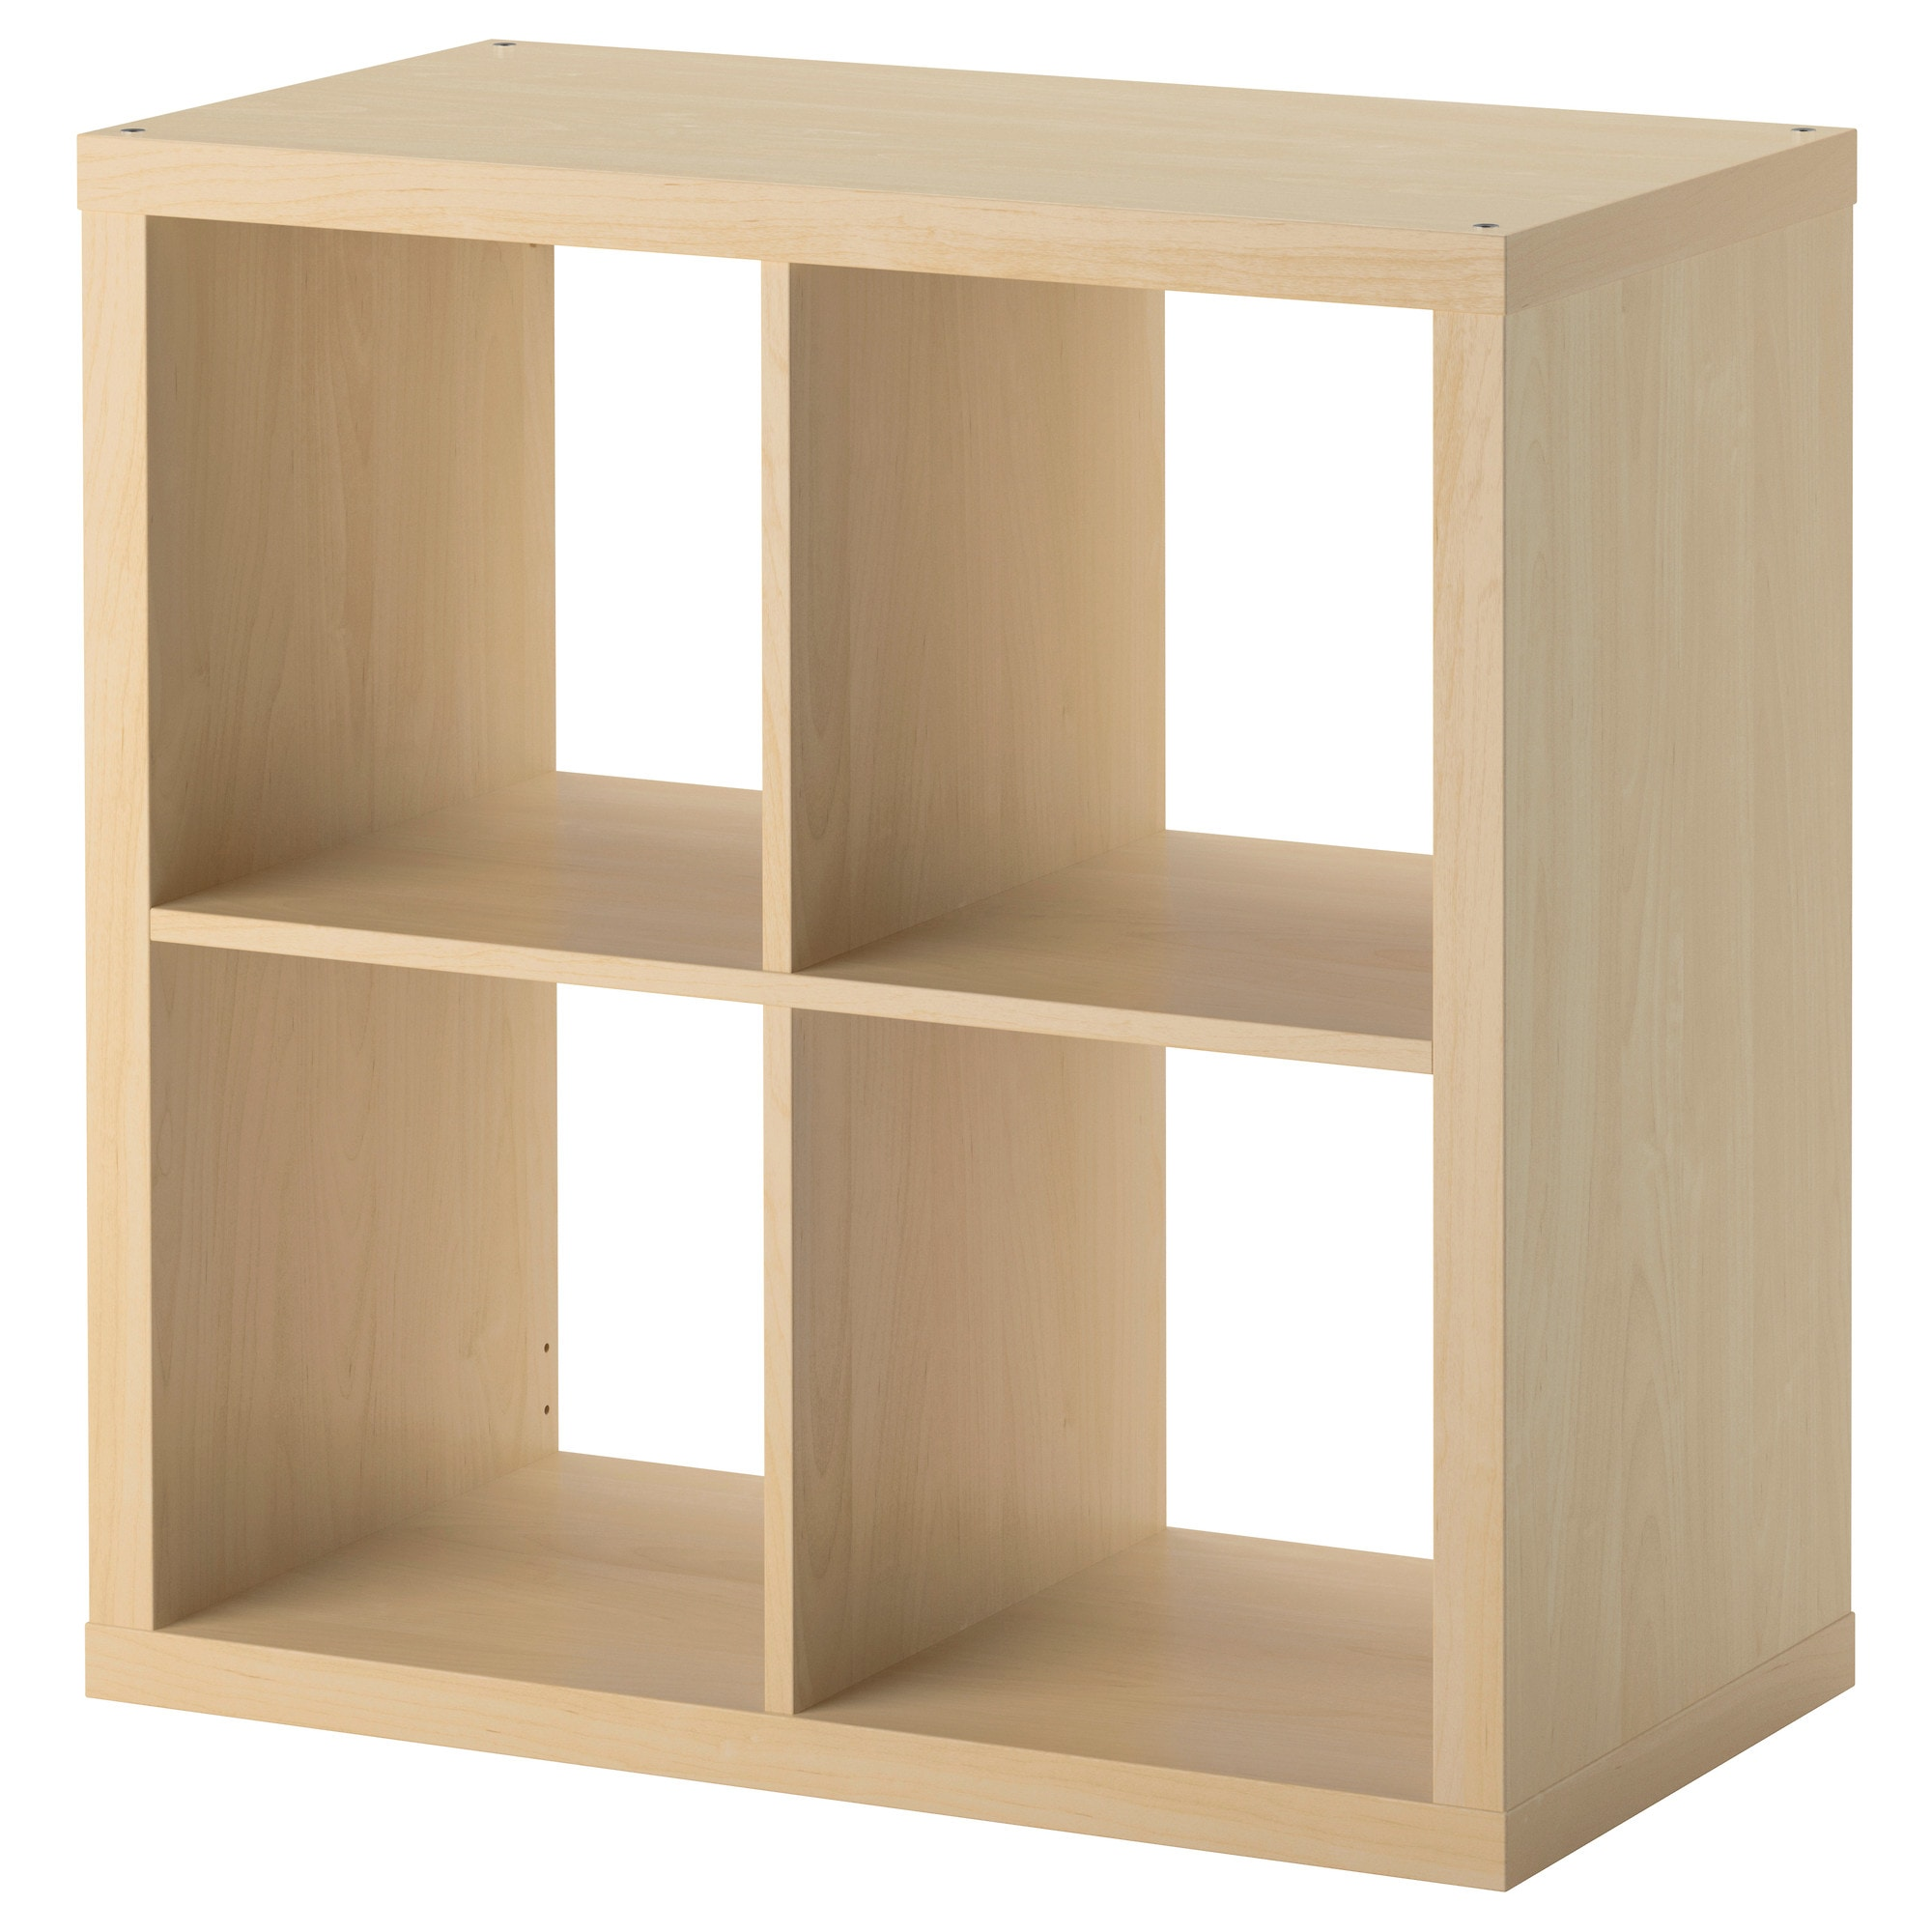 . KALLAX Shelf unit   birch effect   IKEA